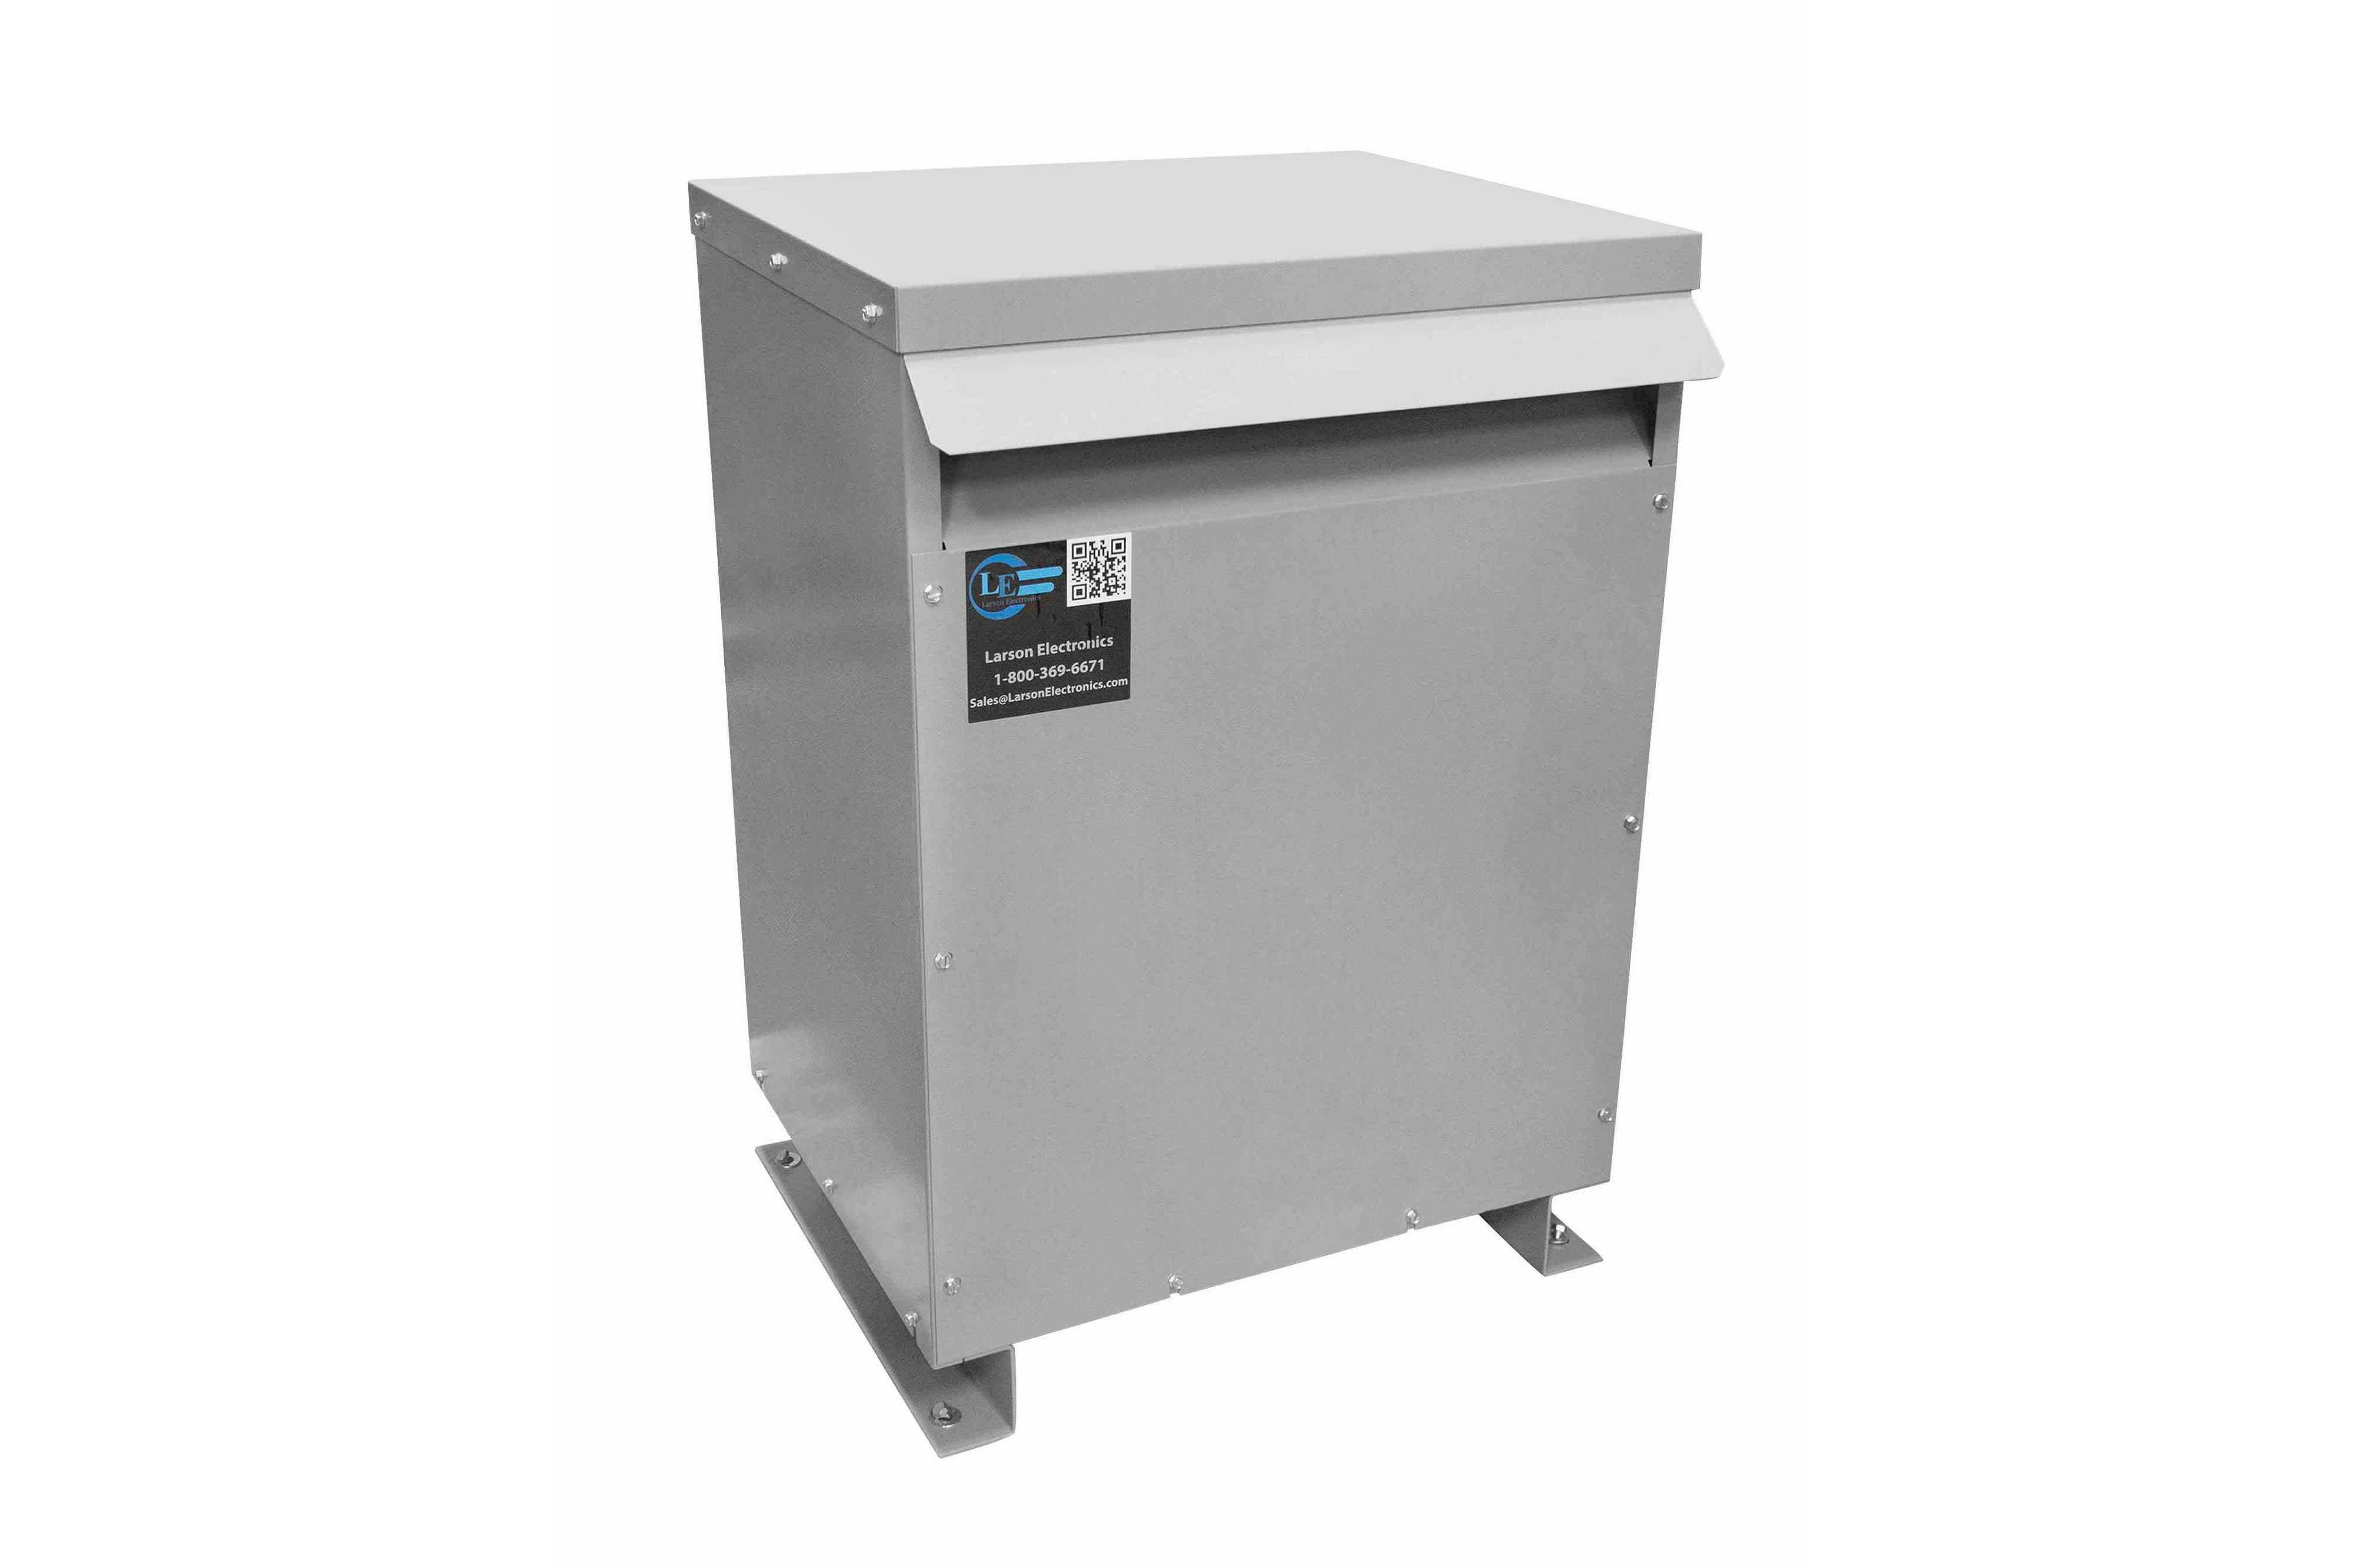 1000 kVA 3PH Isolation Transformer, 400V Wye Primary, 480Y/277 Wye-N Secondary, N3R, Ventilated, 60 Hz